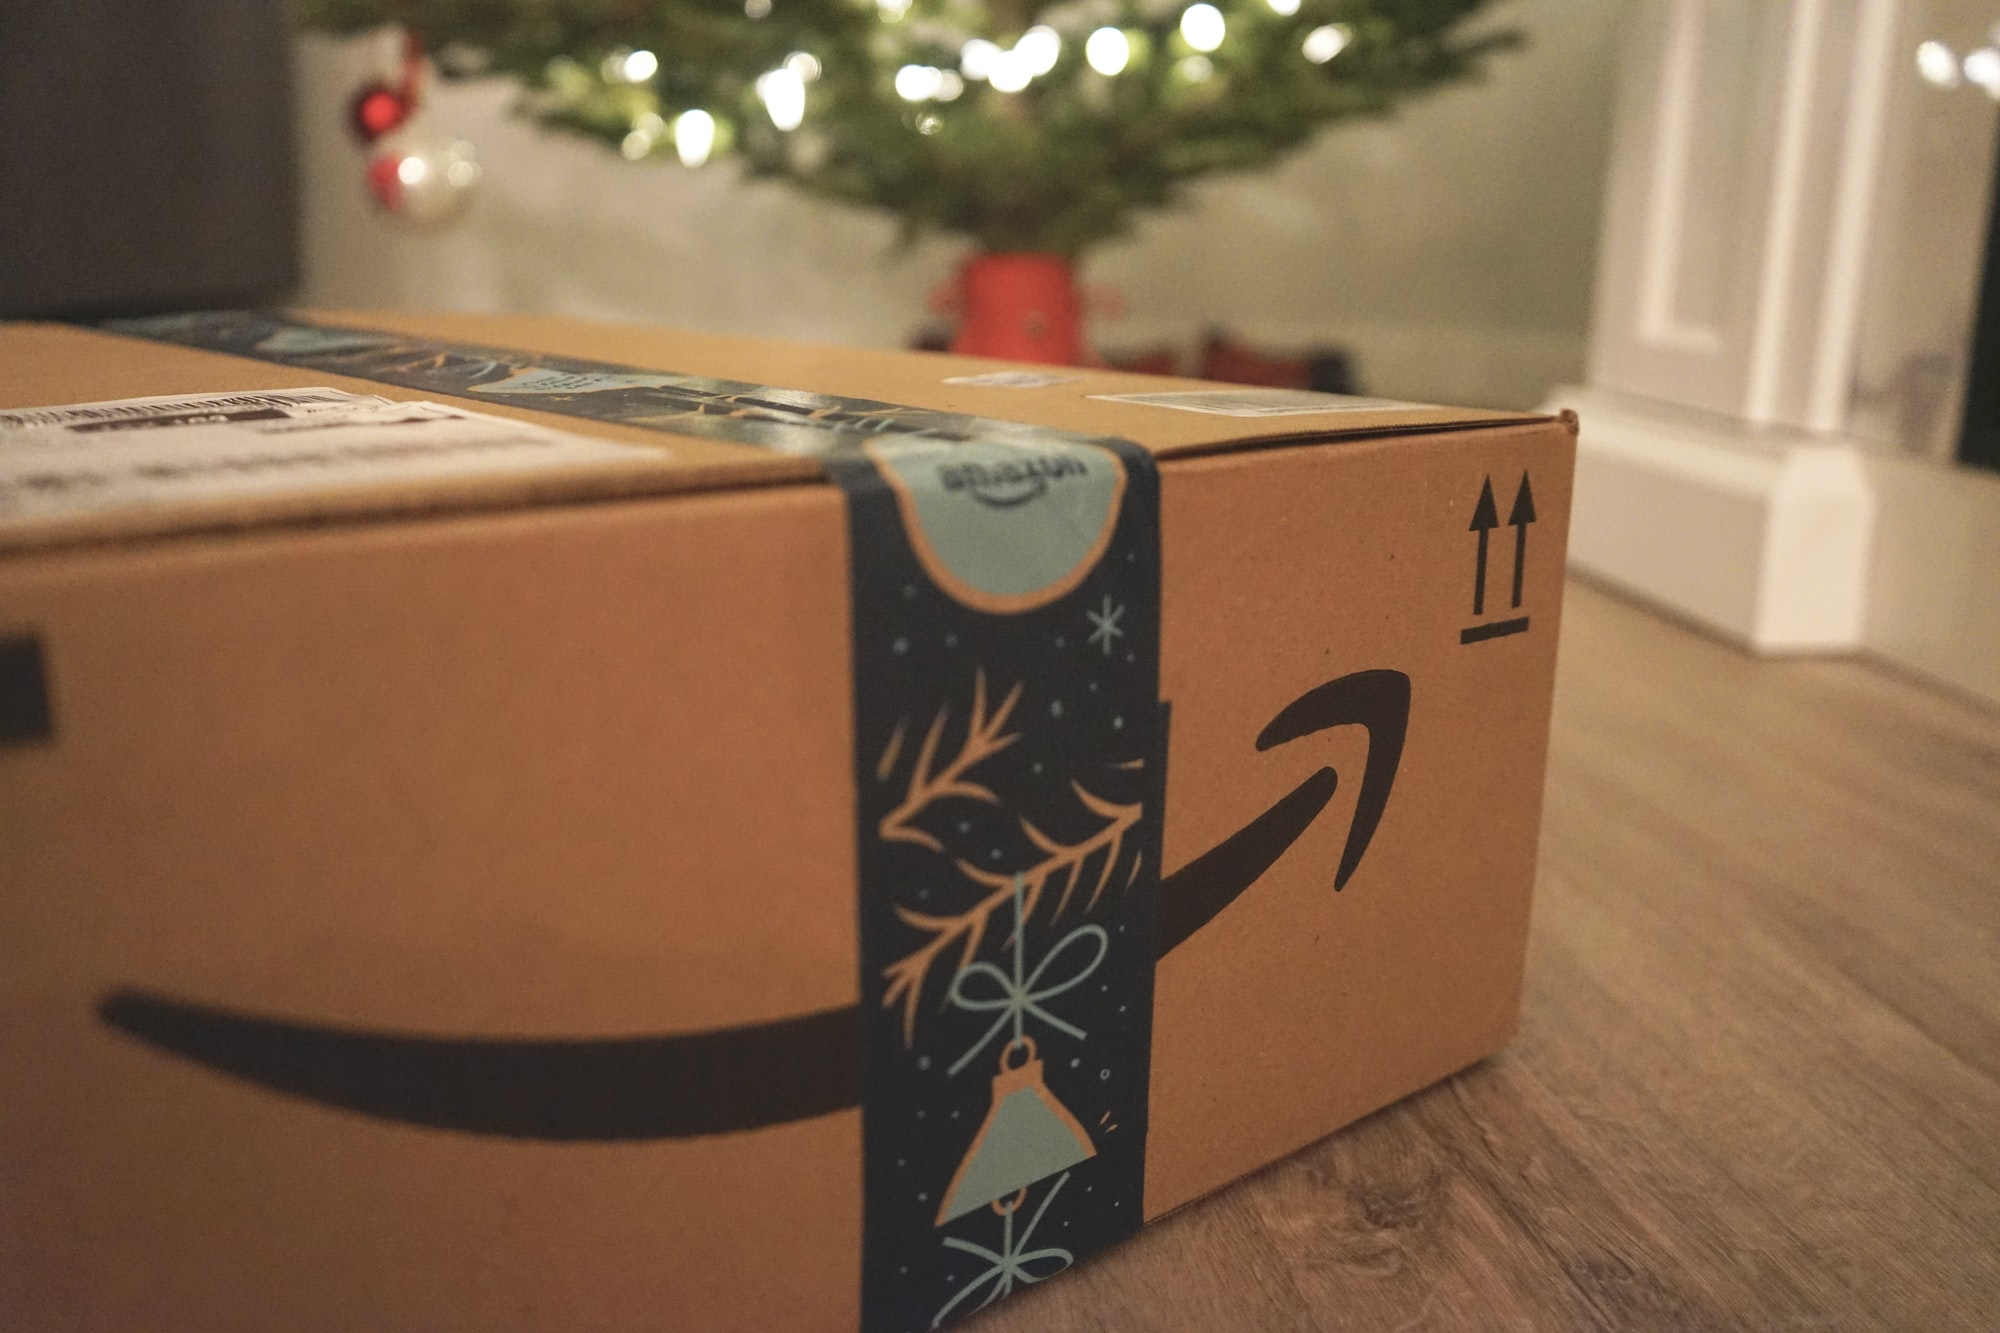 Amazon delivery box with gifts in front of a Christmas tree.